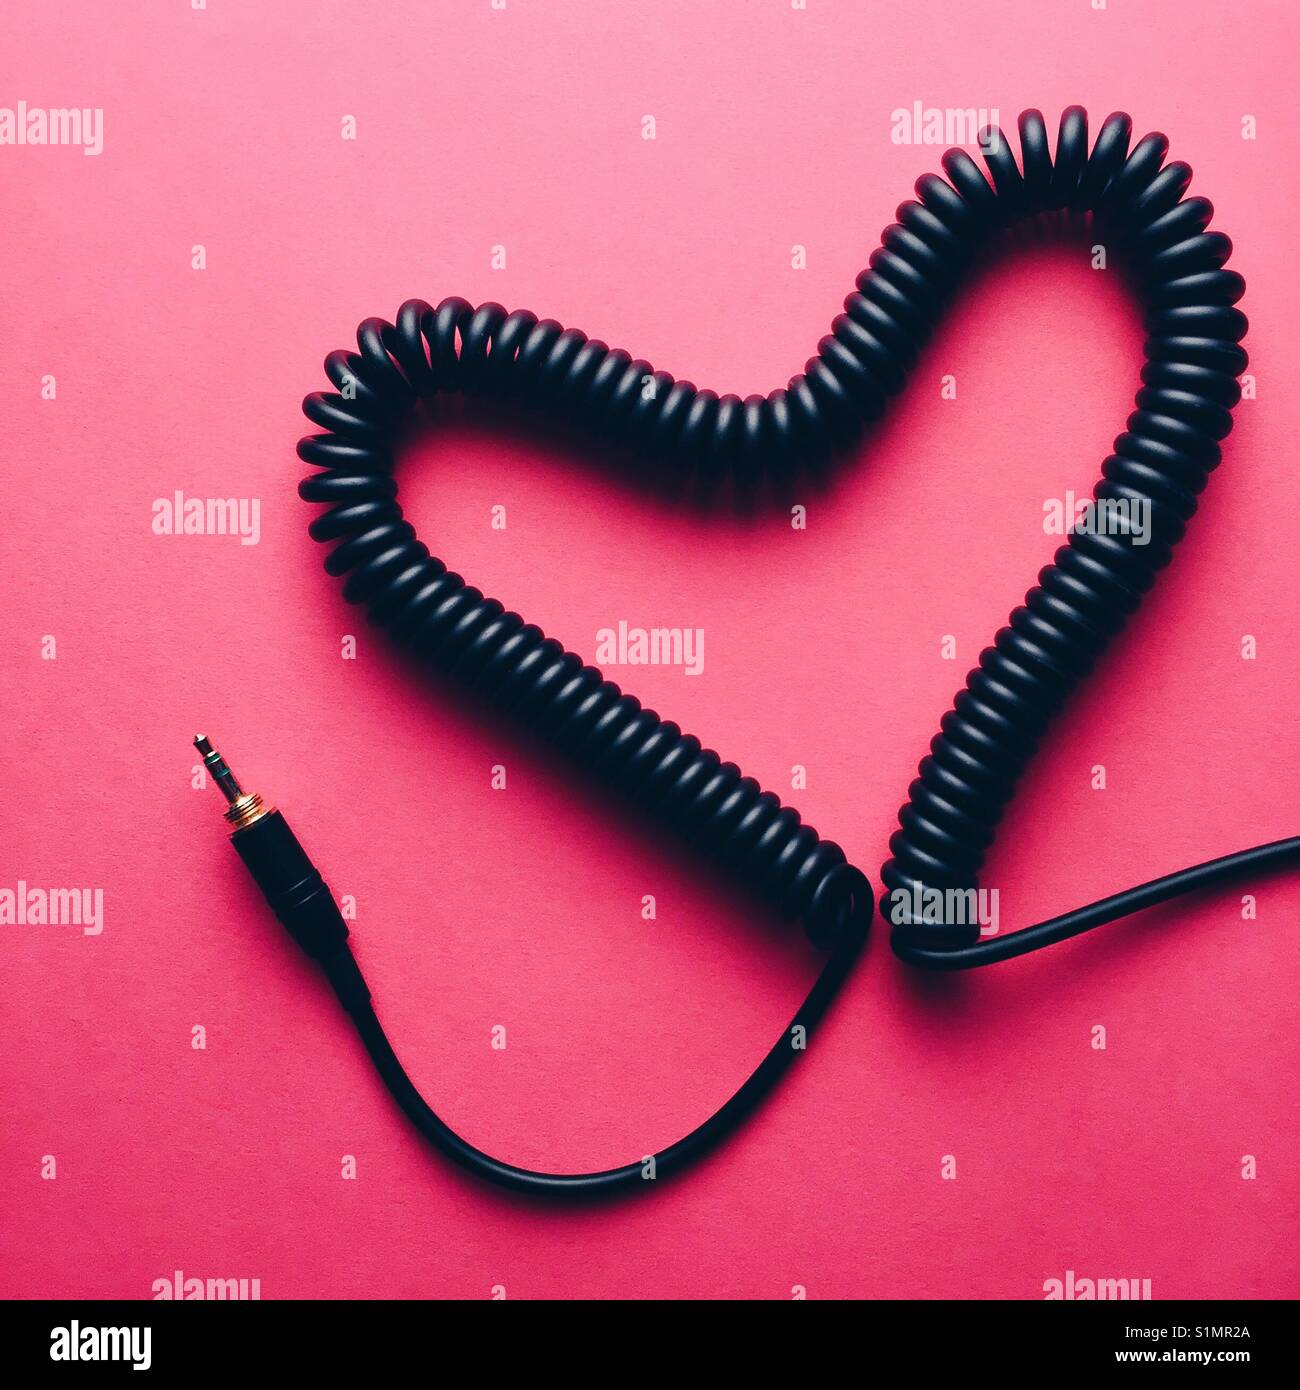 A coiled headphone cable made into a heart shape on a pink background Stock Photo